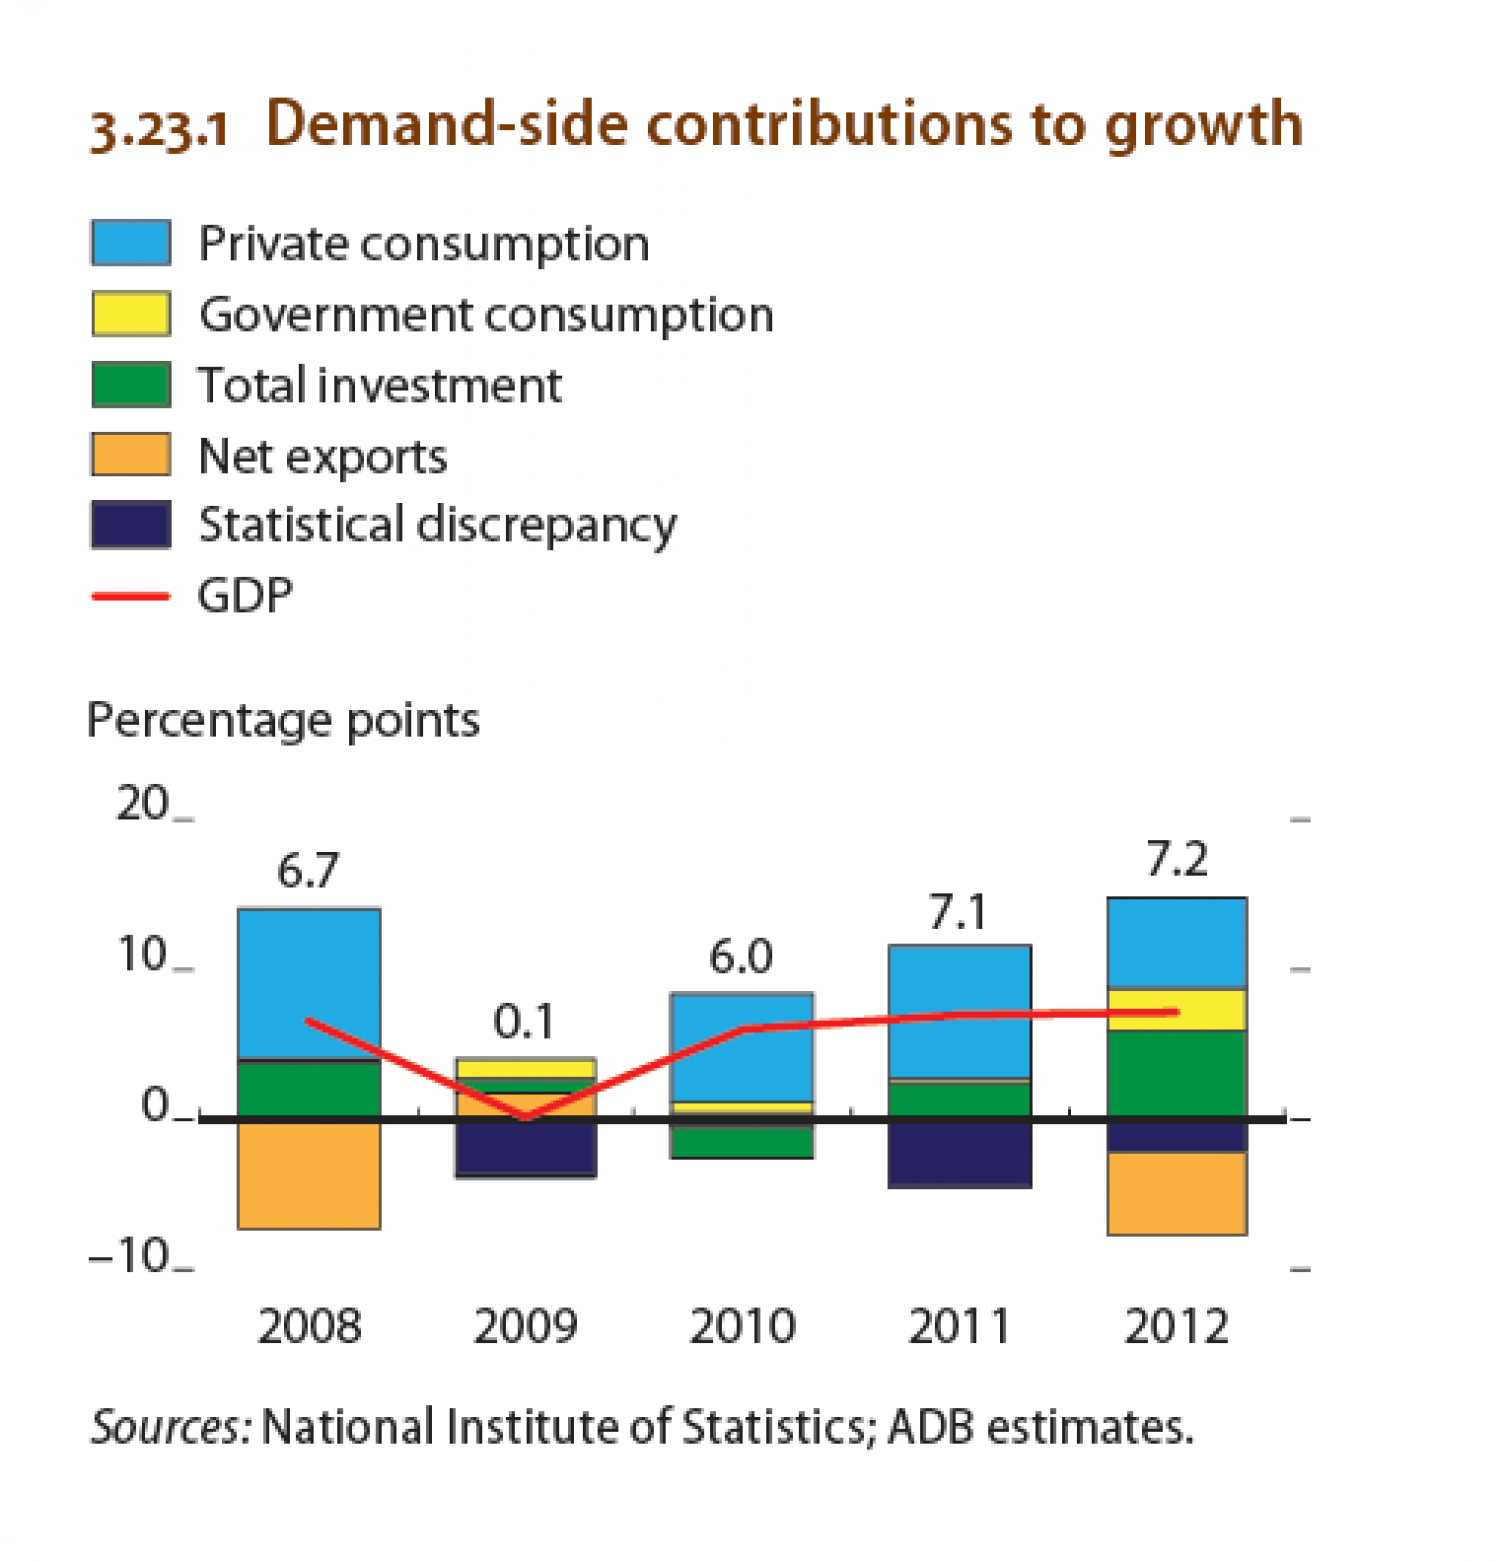 Cambodia - Demand-side contributions to growth Infographic